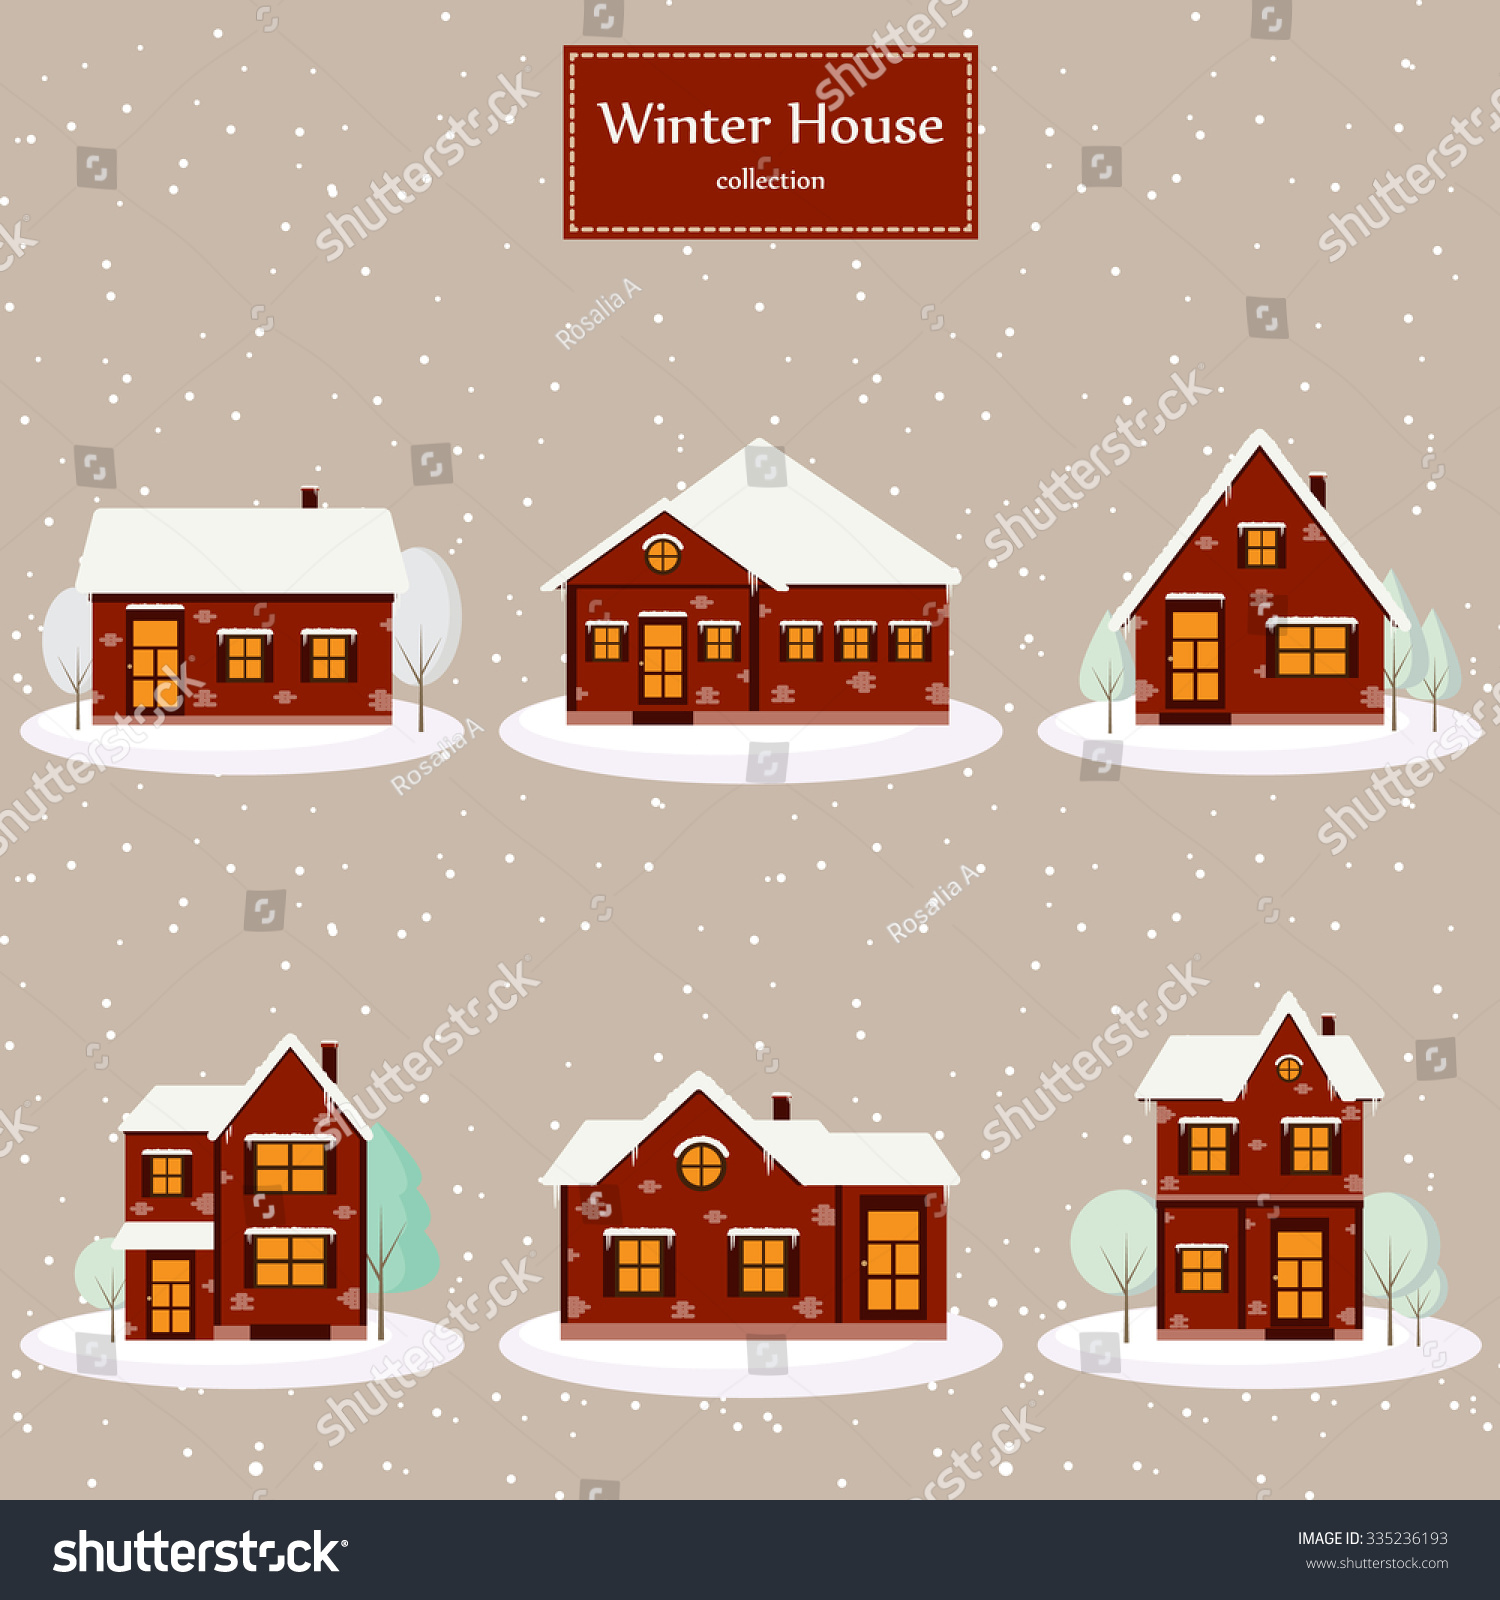 Christmas house with snow art - Winter House Collection Vector Image Of The Red Brick Christmas Houses Covered With Snow